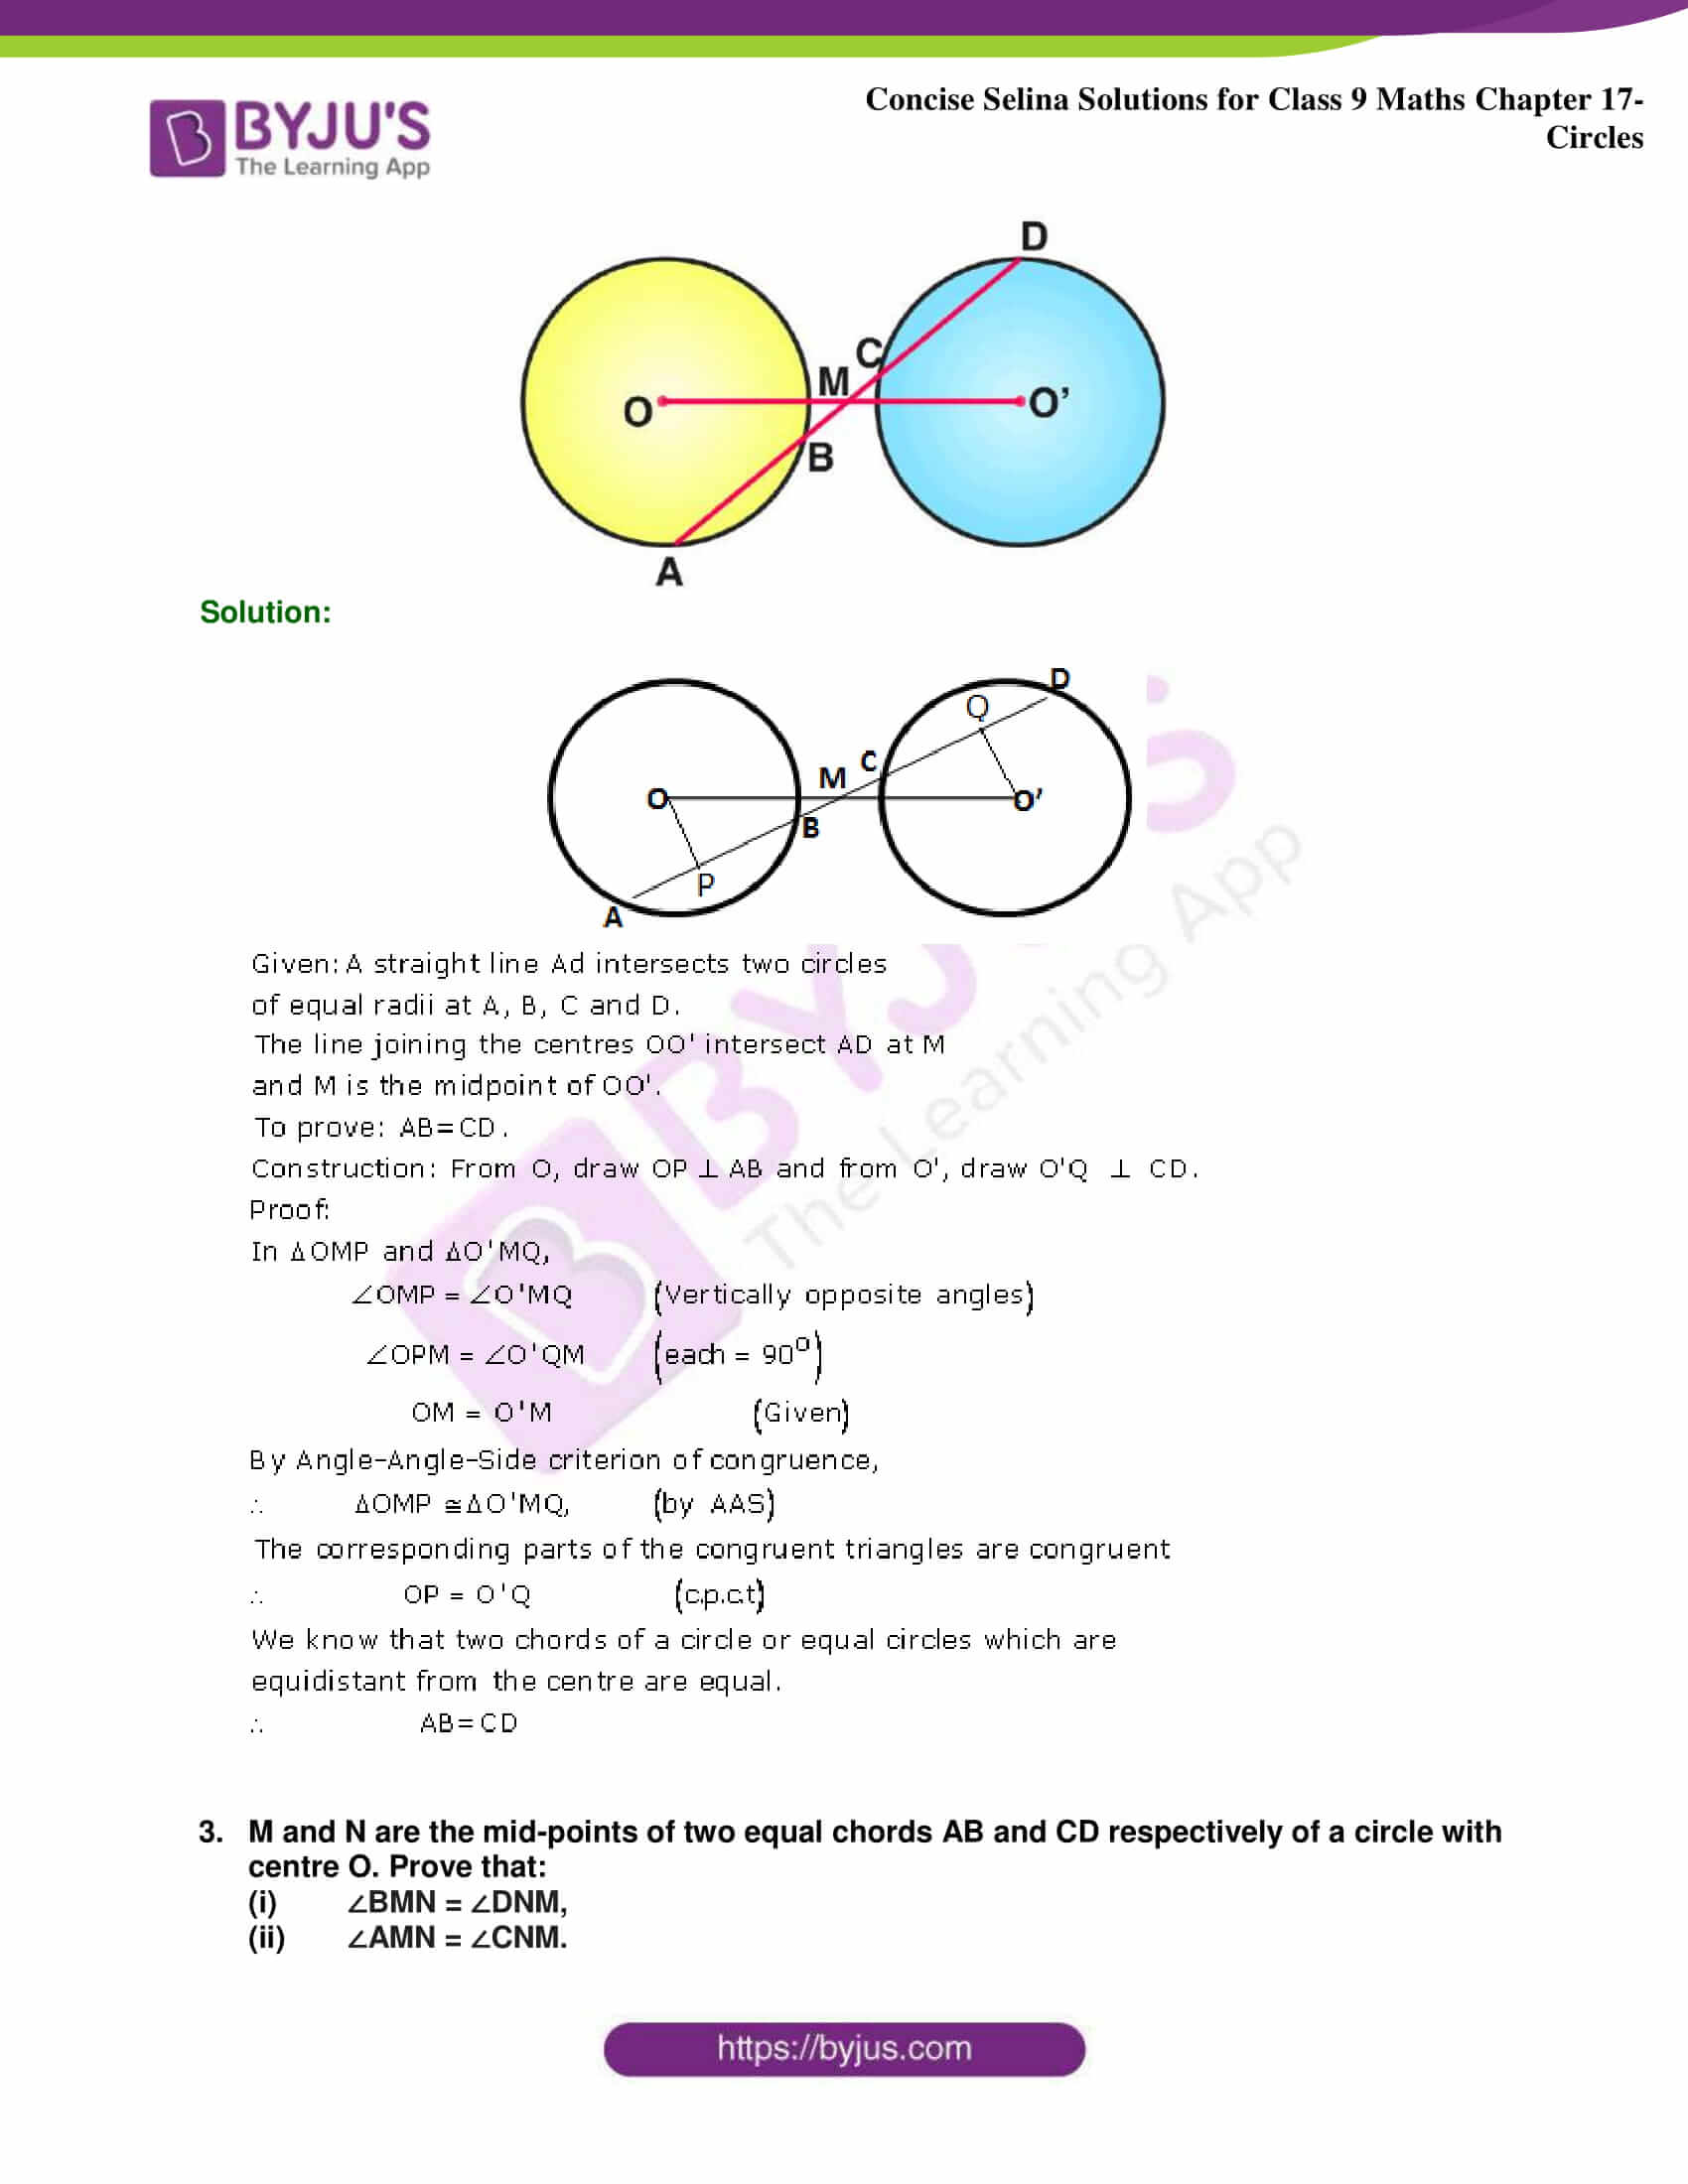 Concise Selina Solutions Class 9 Maths Chapter 17 Circles part 10